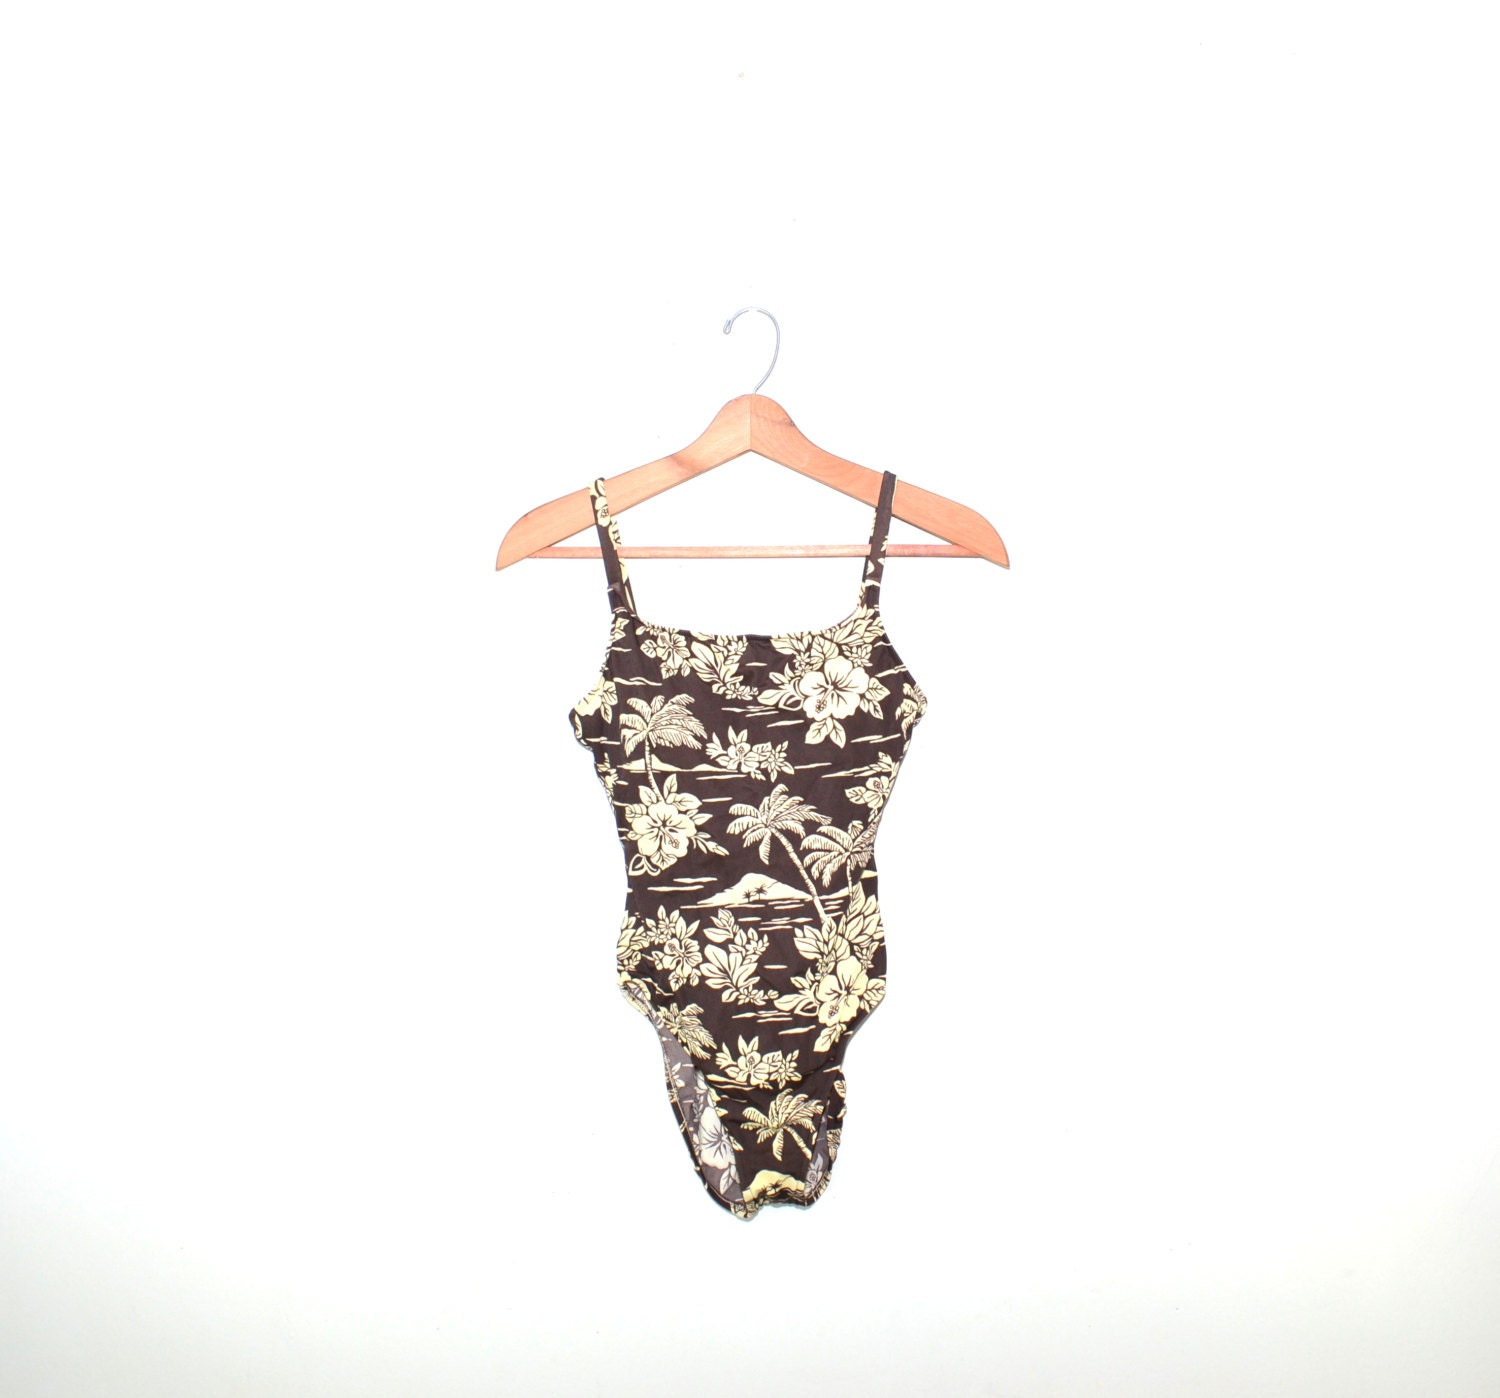 Vintage Brown Swimsuit Brown Bathing Suit One Piece Swimsuit